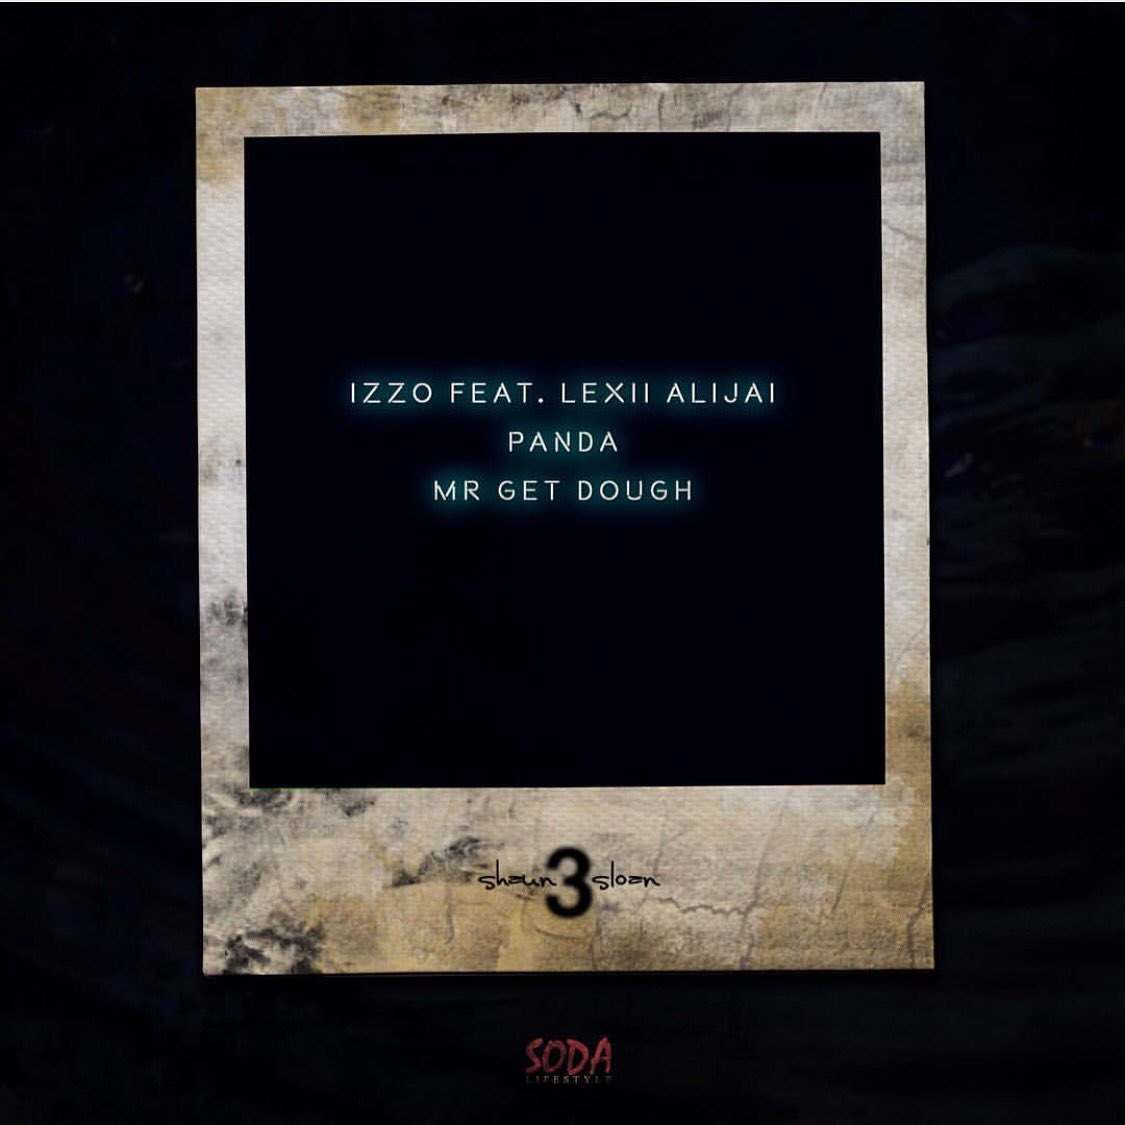 Who can't wait to hear @LexiiAlijai and @RealShaunSloan kill it on Jay-Z's #Izzo? #3for3Collection 4.30.16